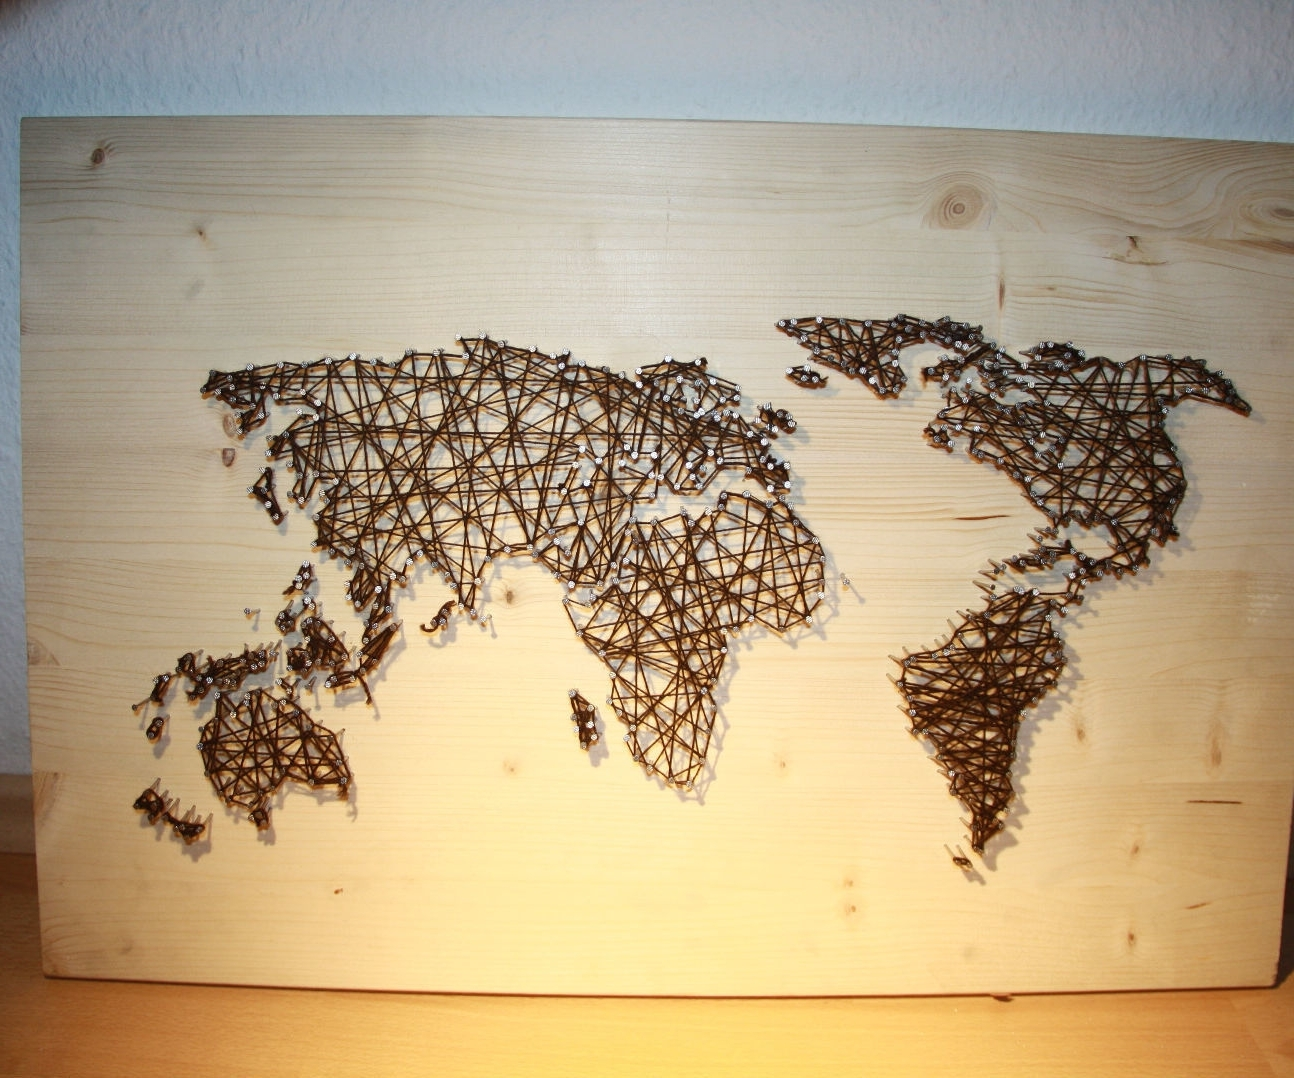 Newest String Map Wall Art In Wall Nail Art Gallery – Easy Nail Designs For Beginners Stepstep (View 15 of 15)